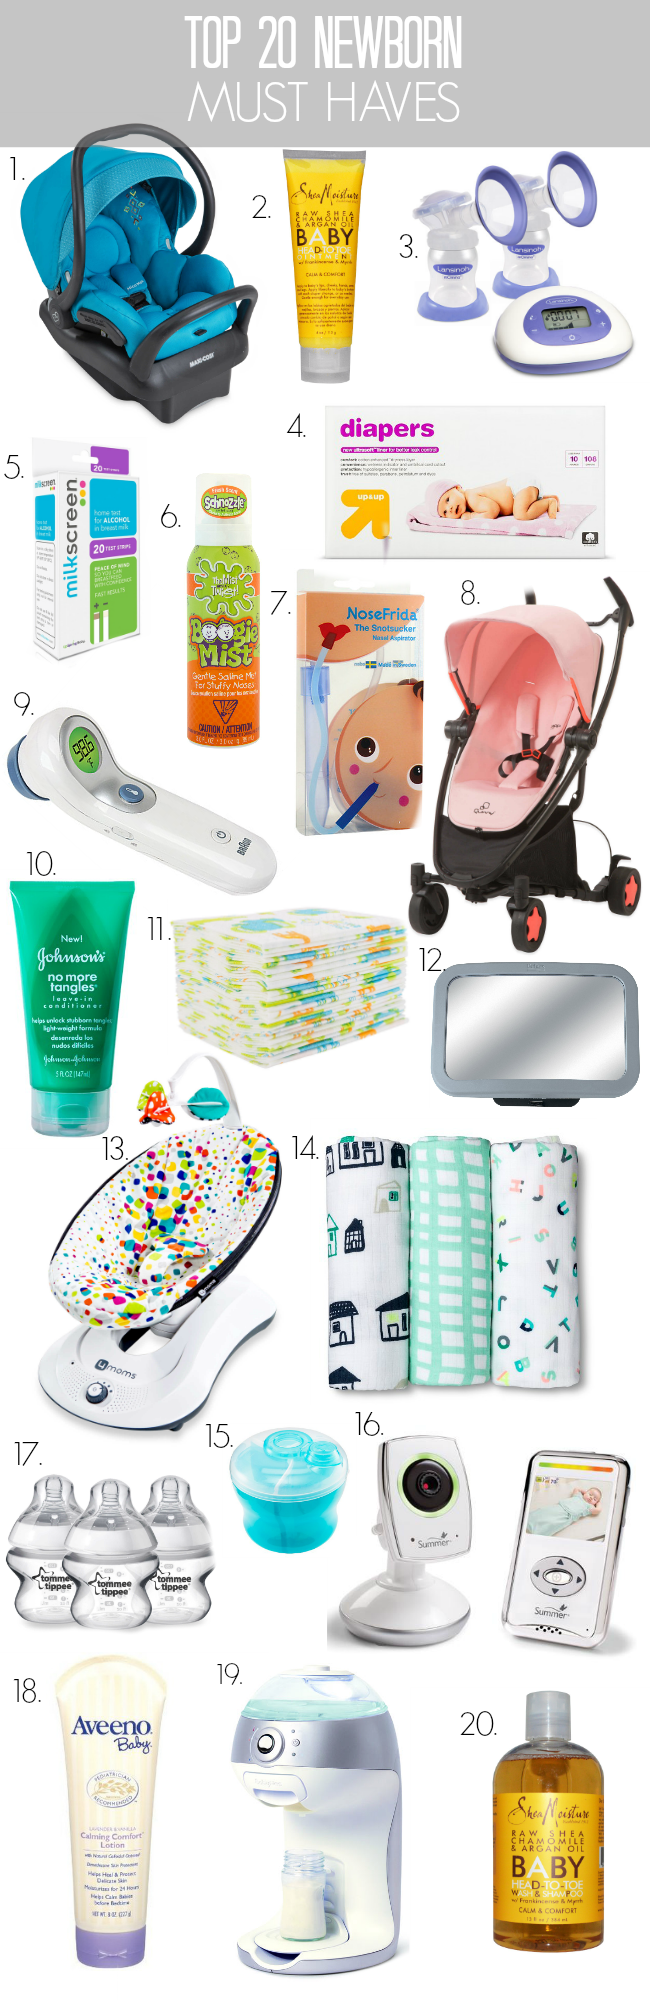 top 20 baby items 2